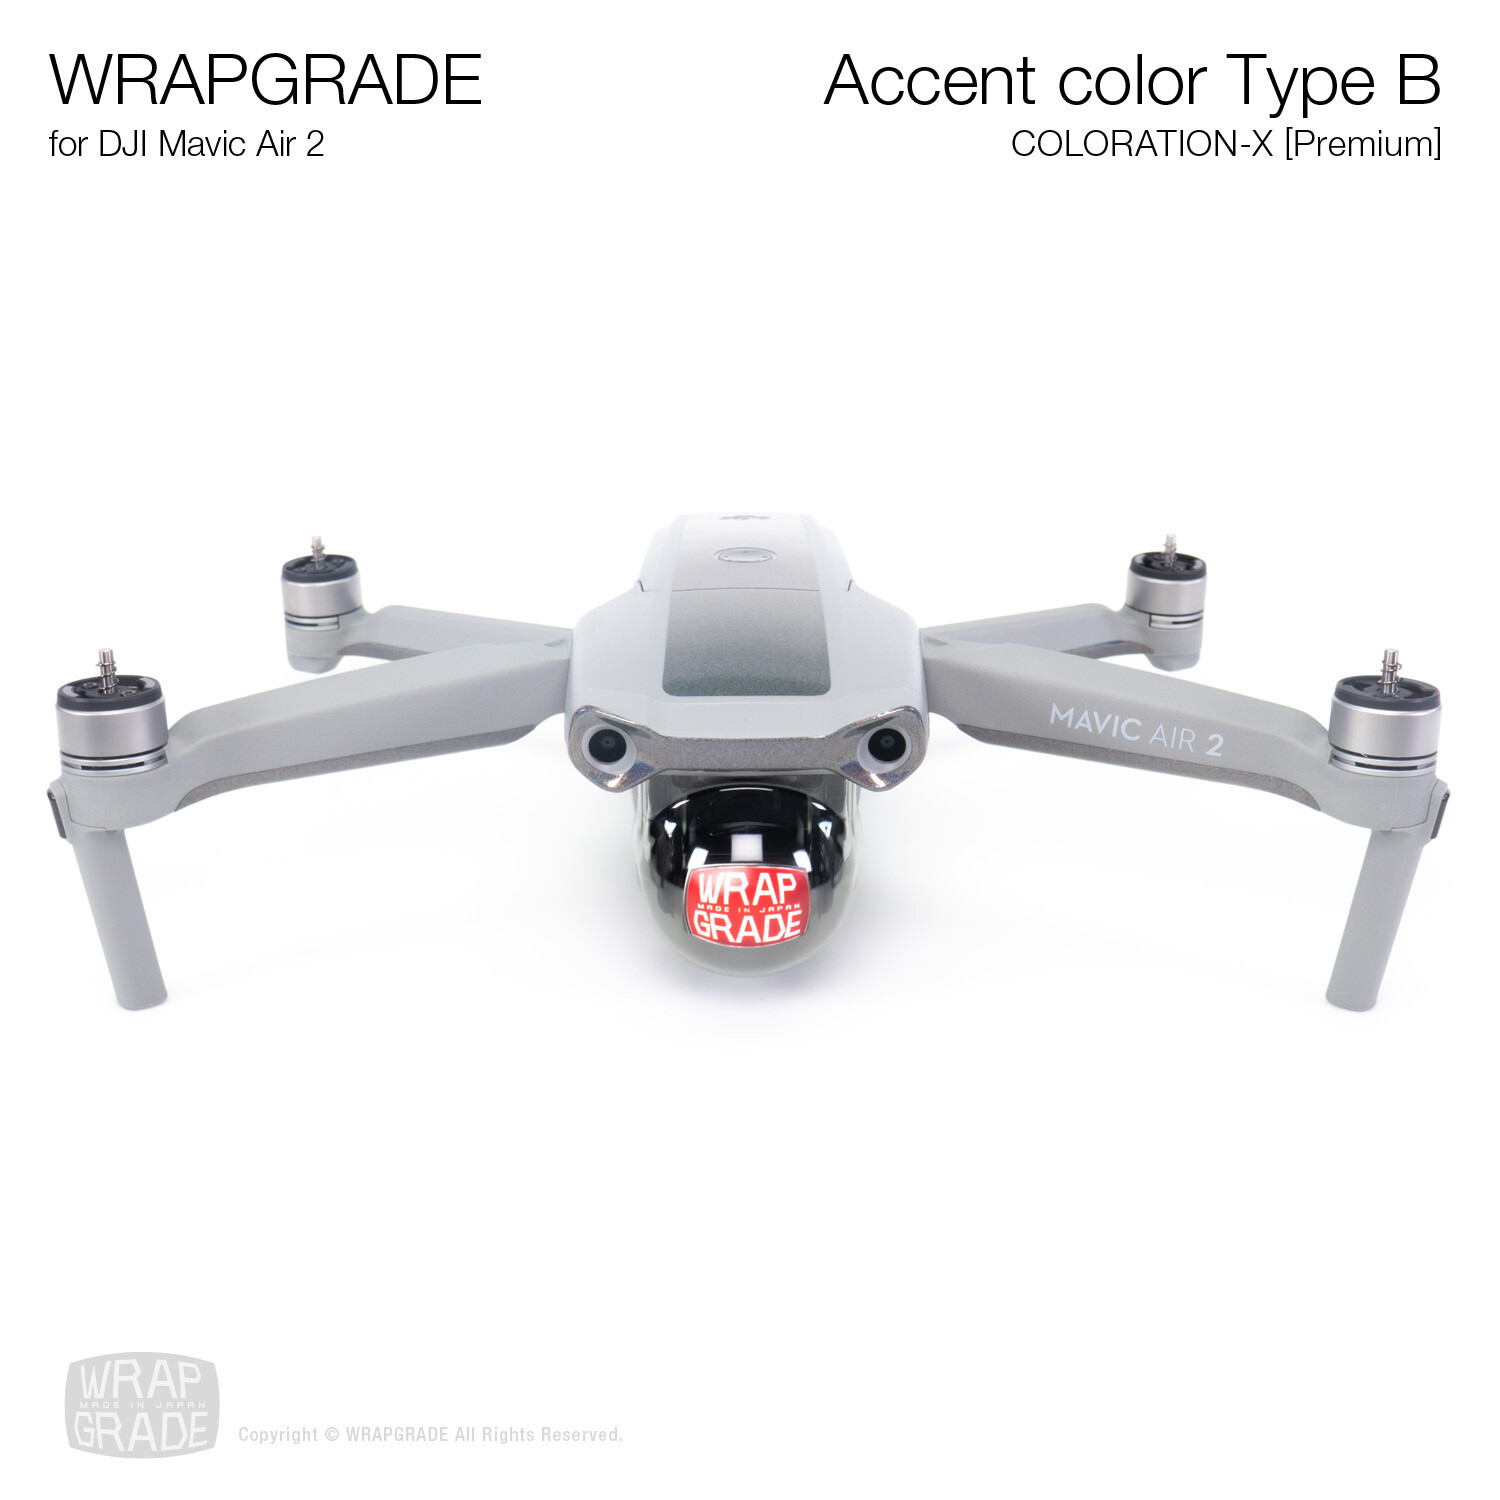 Wrapgrade for DJI Mavic Air 2 | Accent Color B (COLORATION-X)